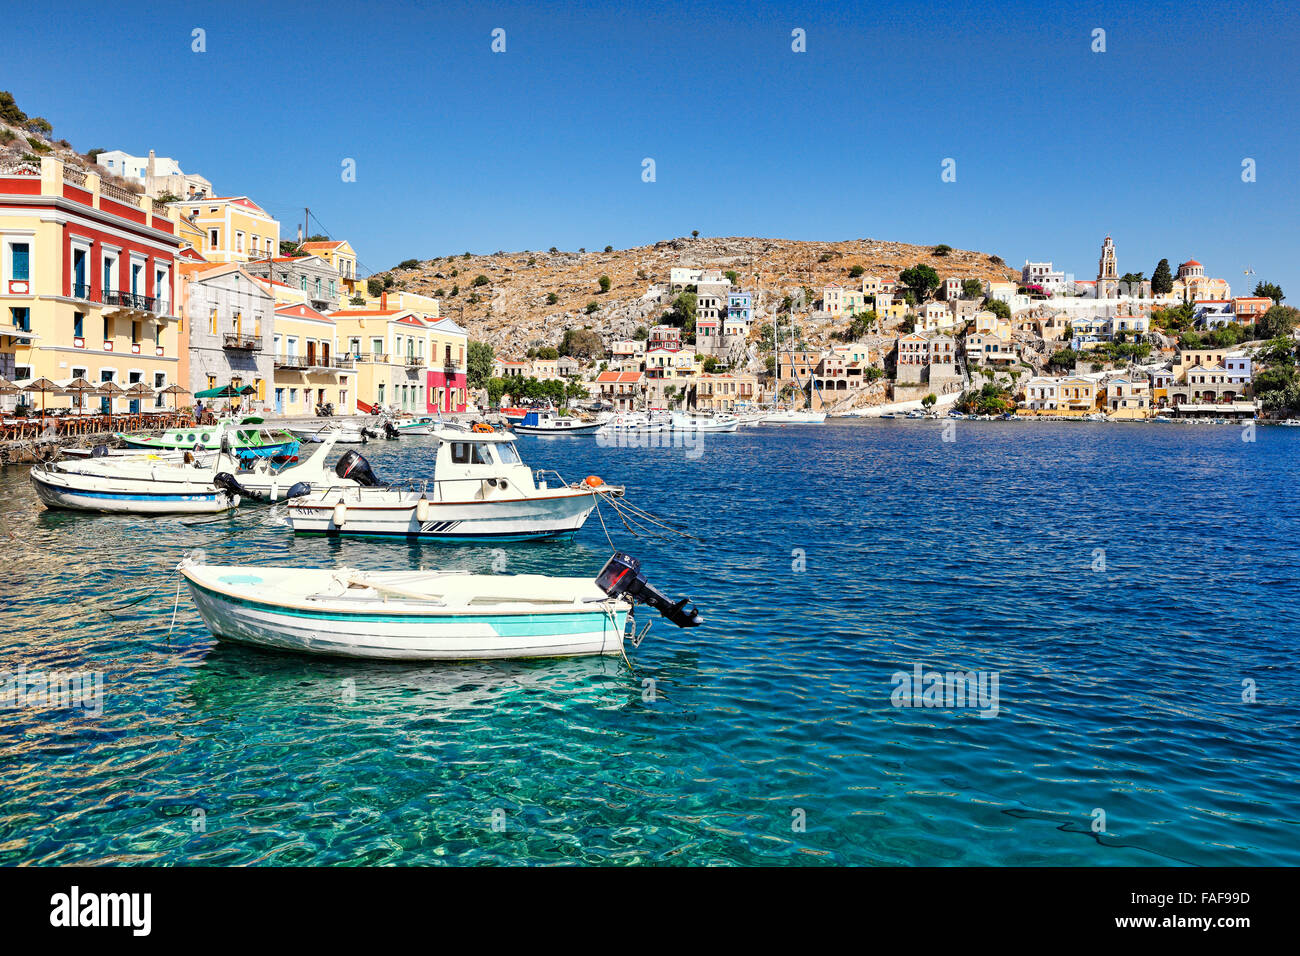 Fishing boats at the port of Symi island, Greece - Stock Image